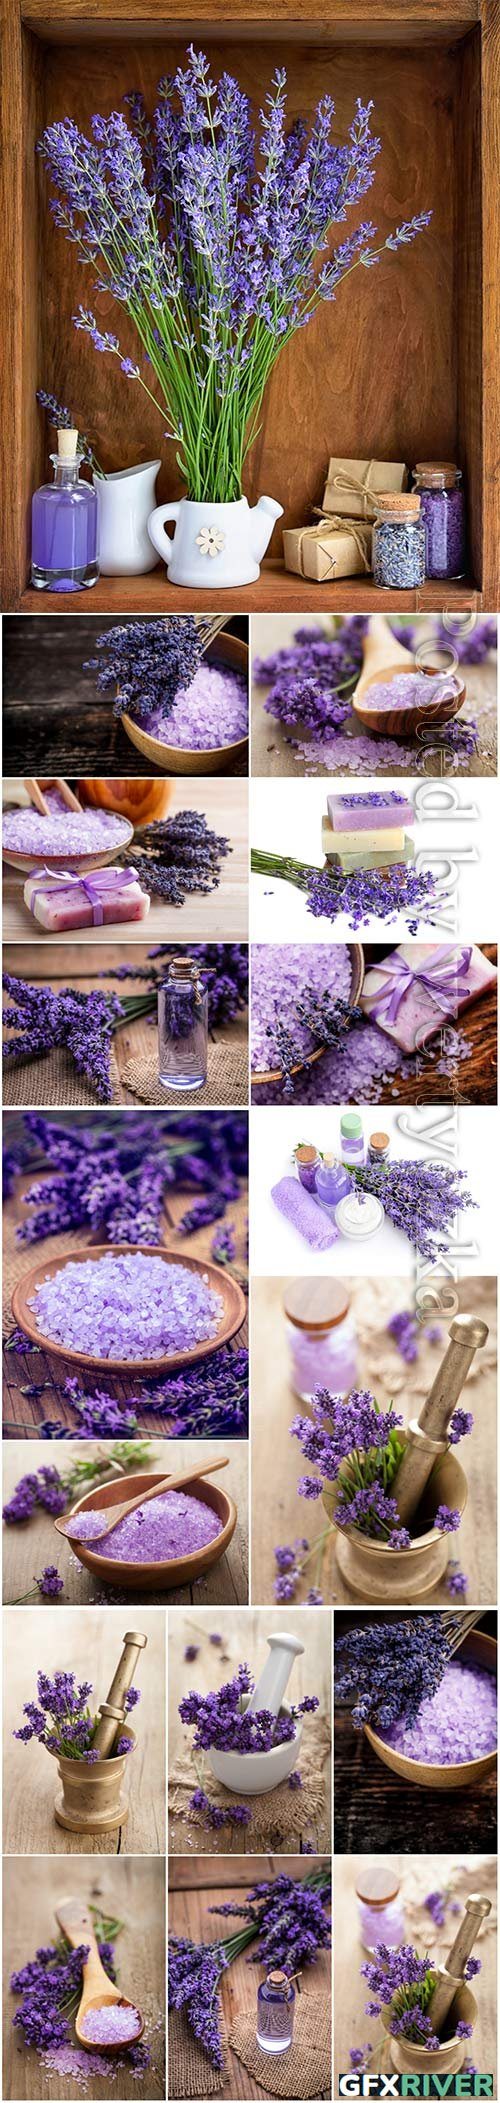 Lavender, spa concept beautiful stock photo